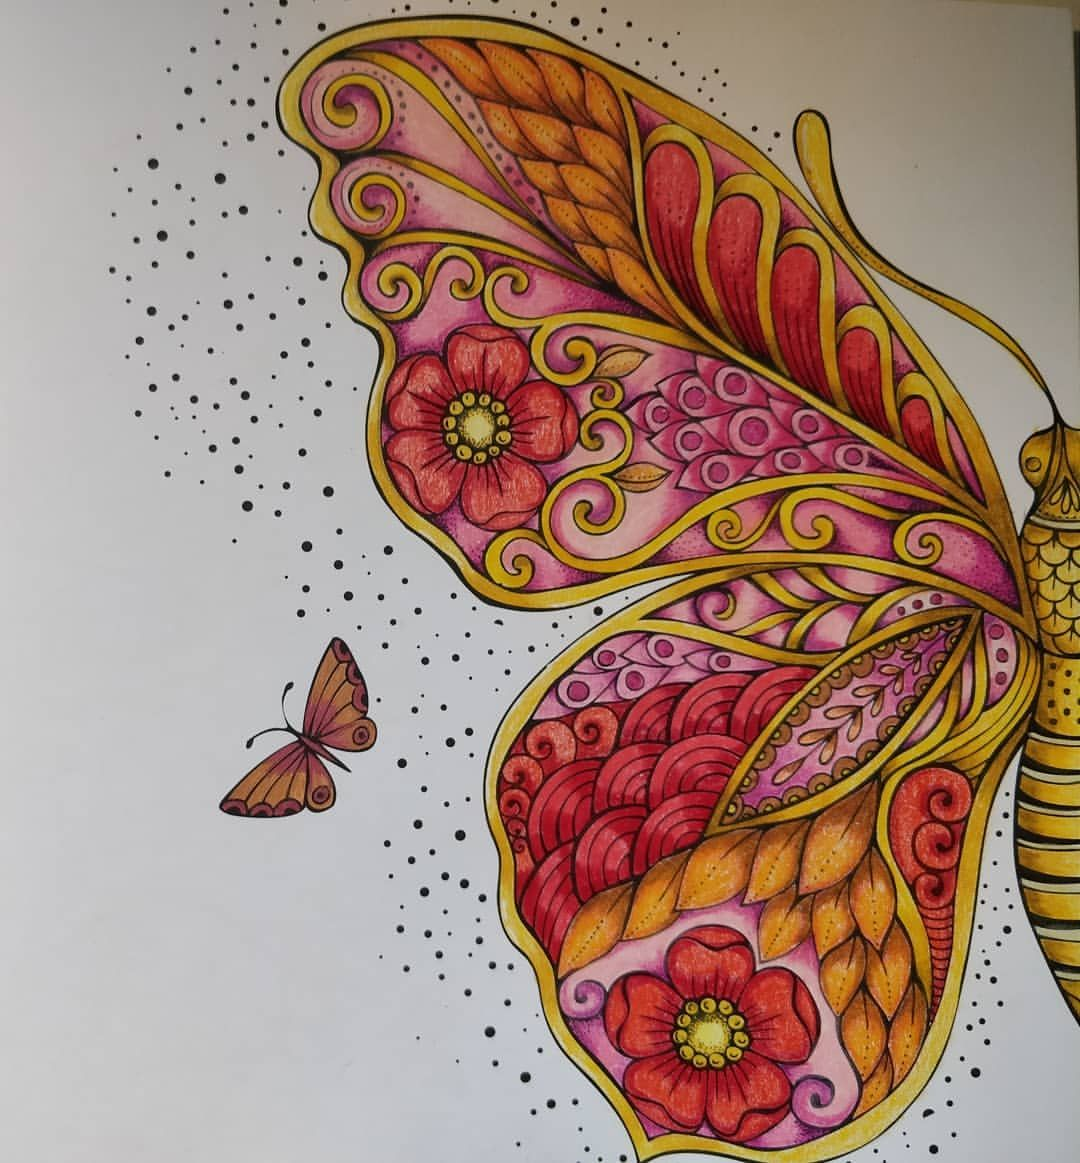 Pin By Callin Edwards On Drawing In 2020 With Images Whimsy Art Coloring Books Butterfly Painting